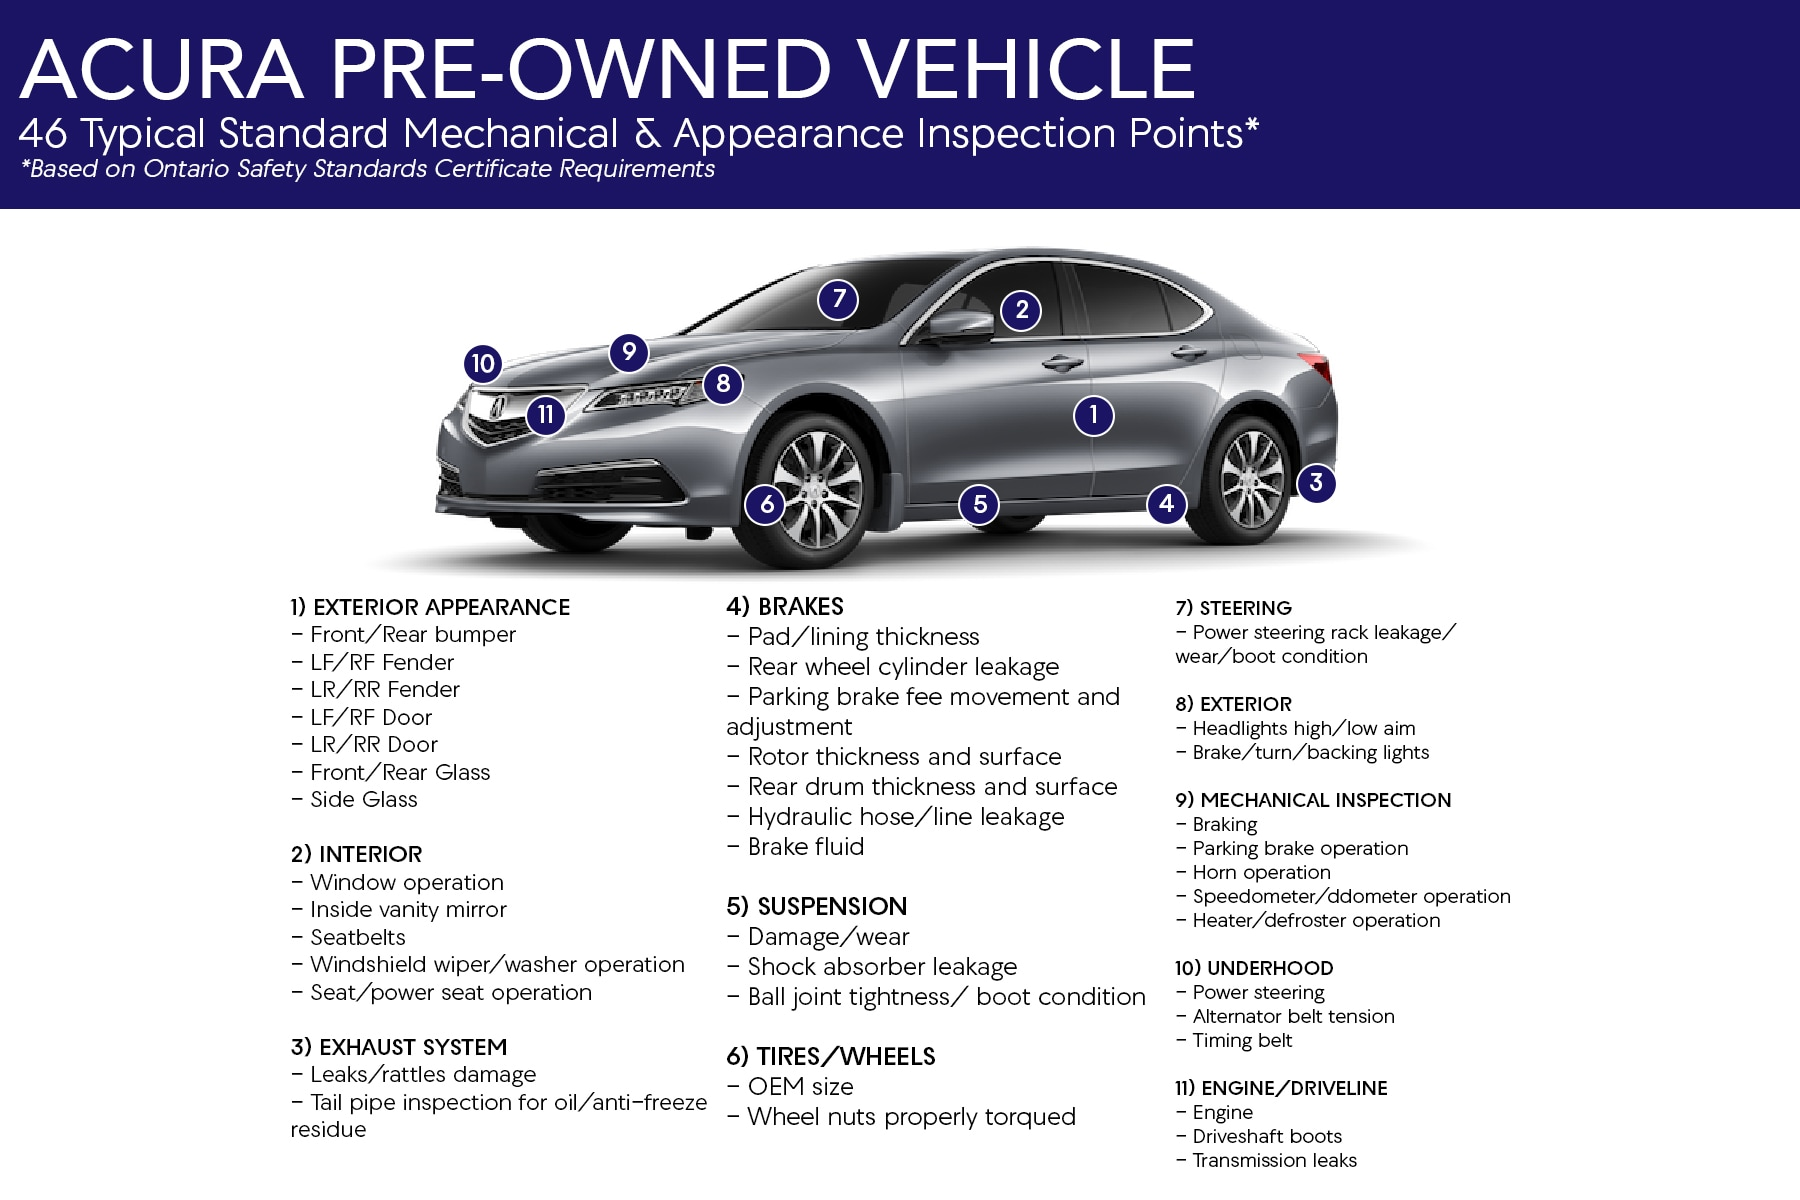 Acura Pre-Owned - Acura of Oakville